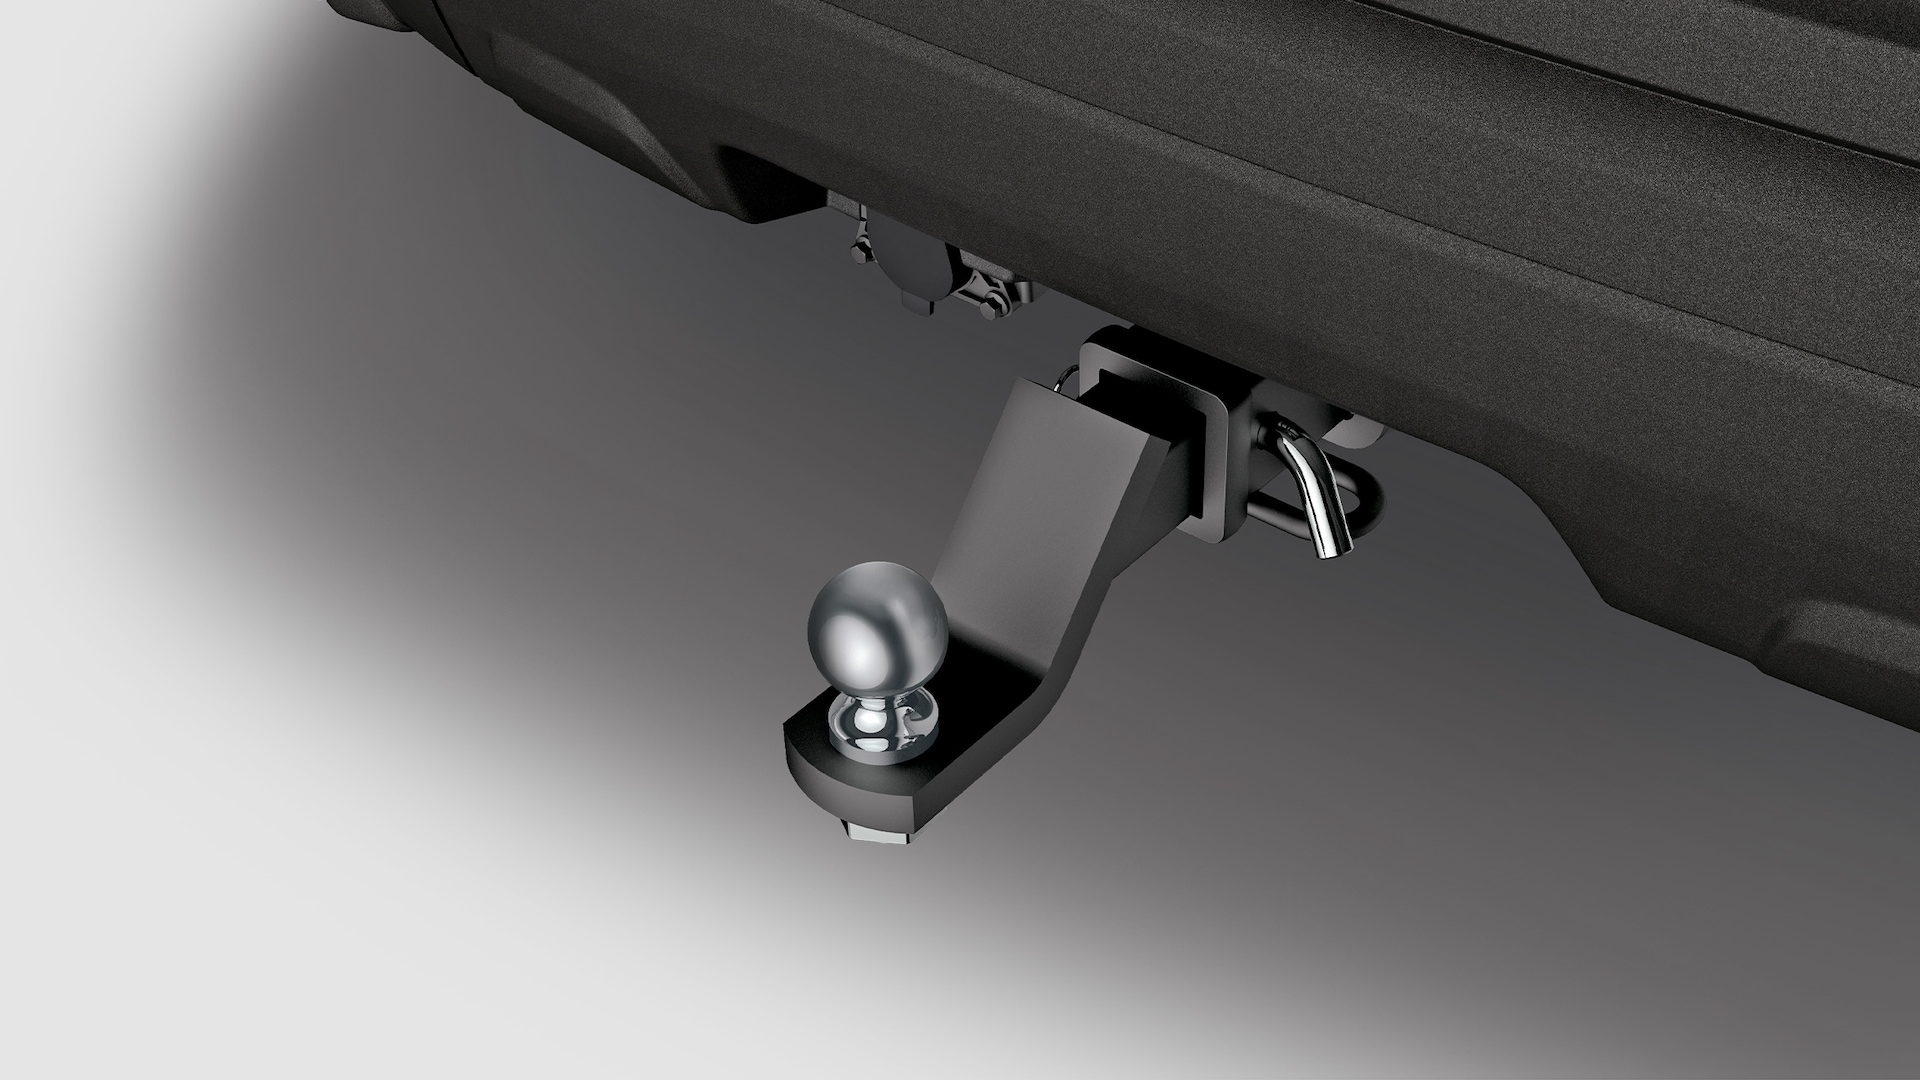 Trailer hitch detail on the 2020 Honda Passport Elite.